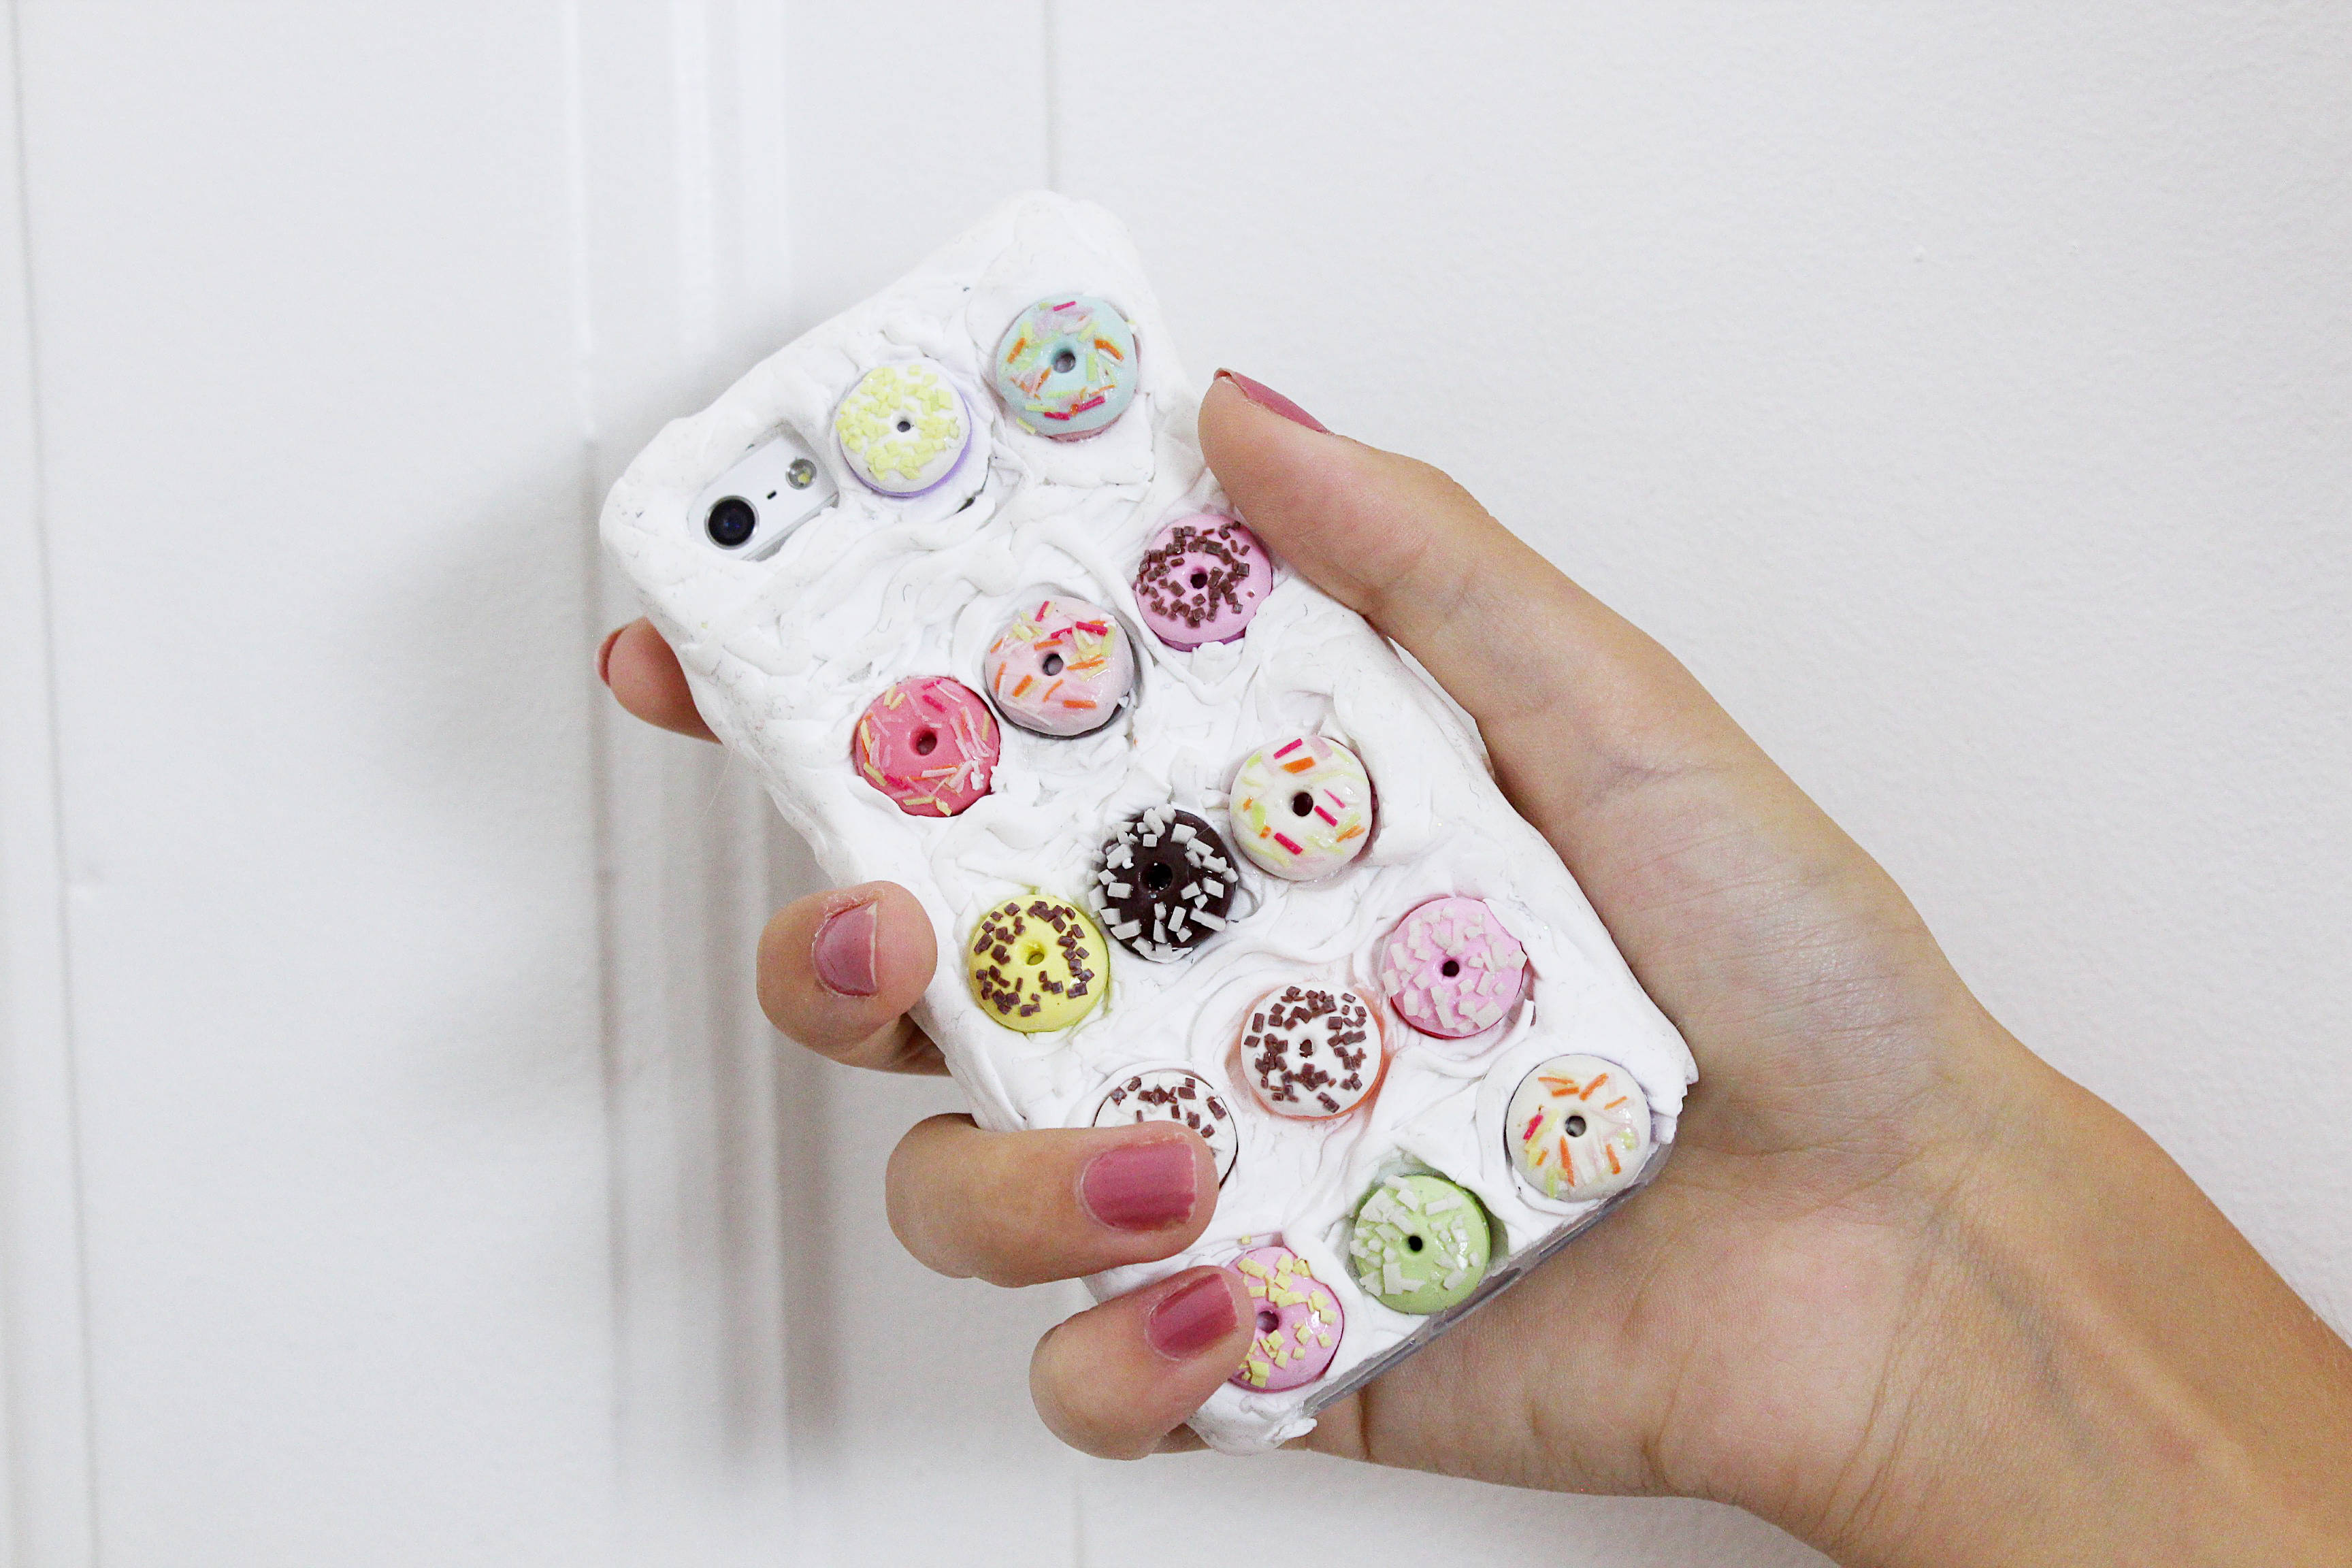 DIY-iphone-case-handyhülle-selbermachen-donuts-fimo-diy-blog